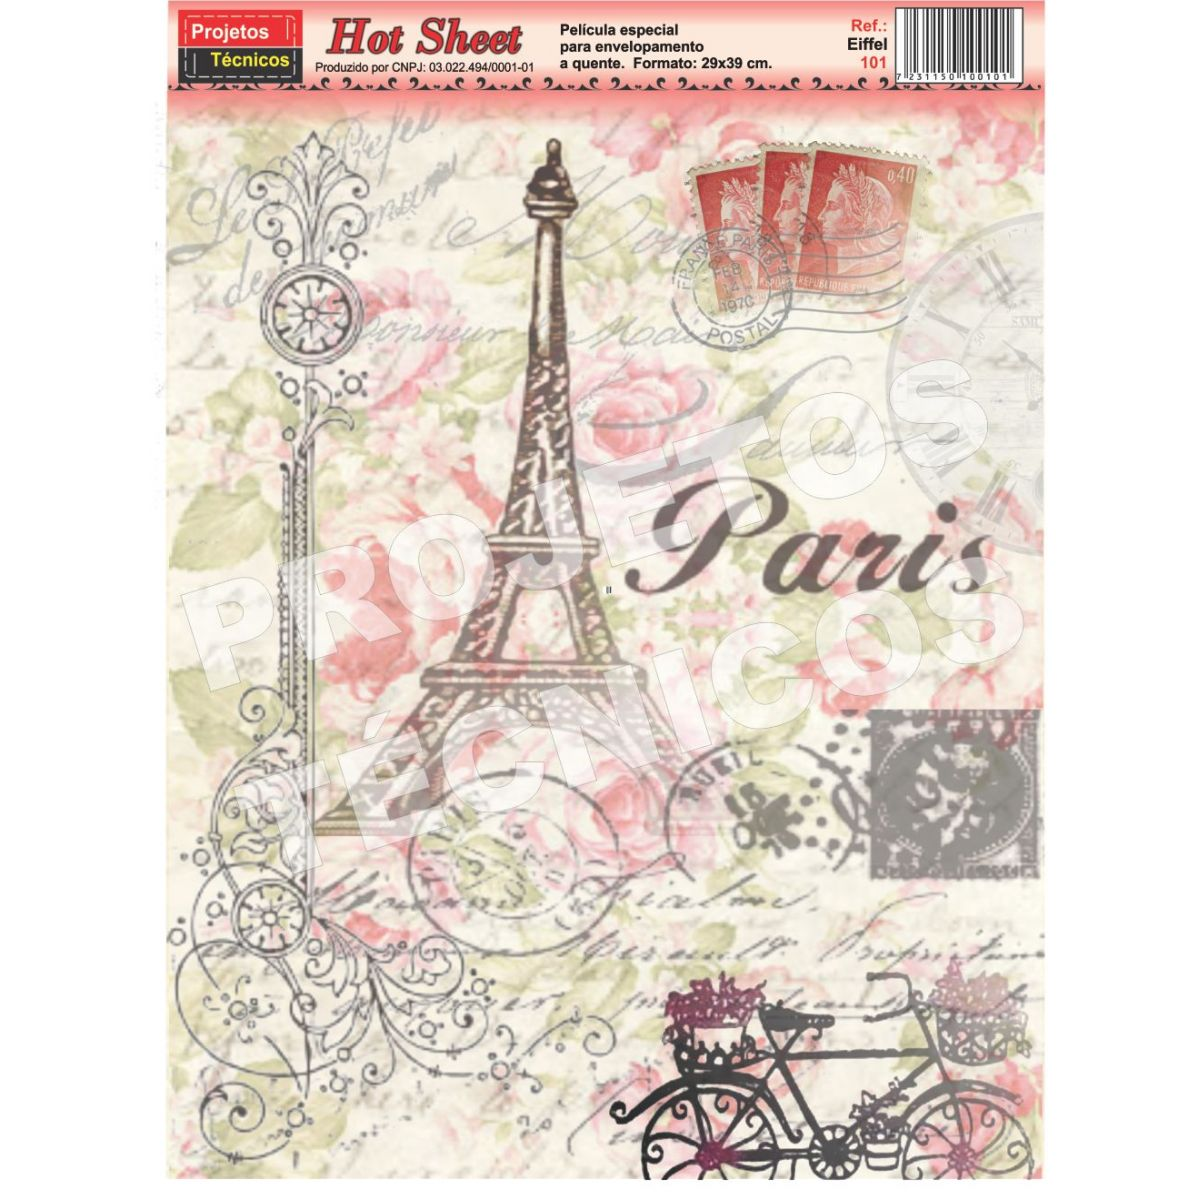 PAPEL HOT SHEET - ESPECIAL DÉCOUPAGE - C/2 UNDS. - PARIS - FORMATO A3